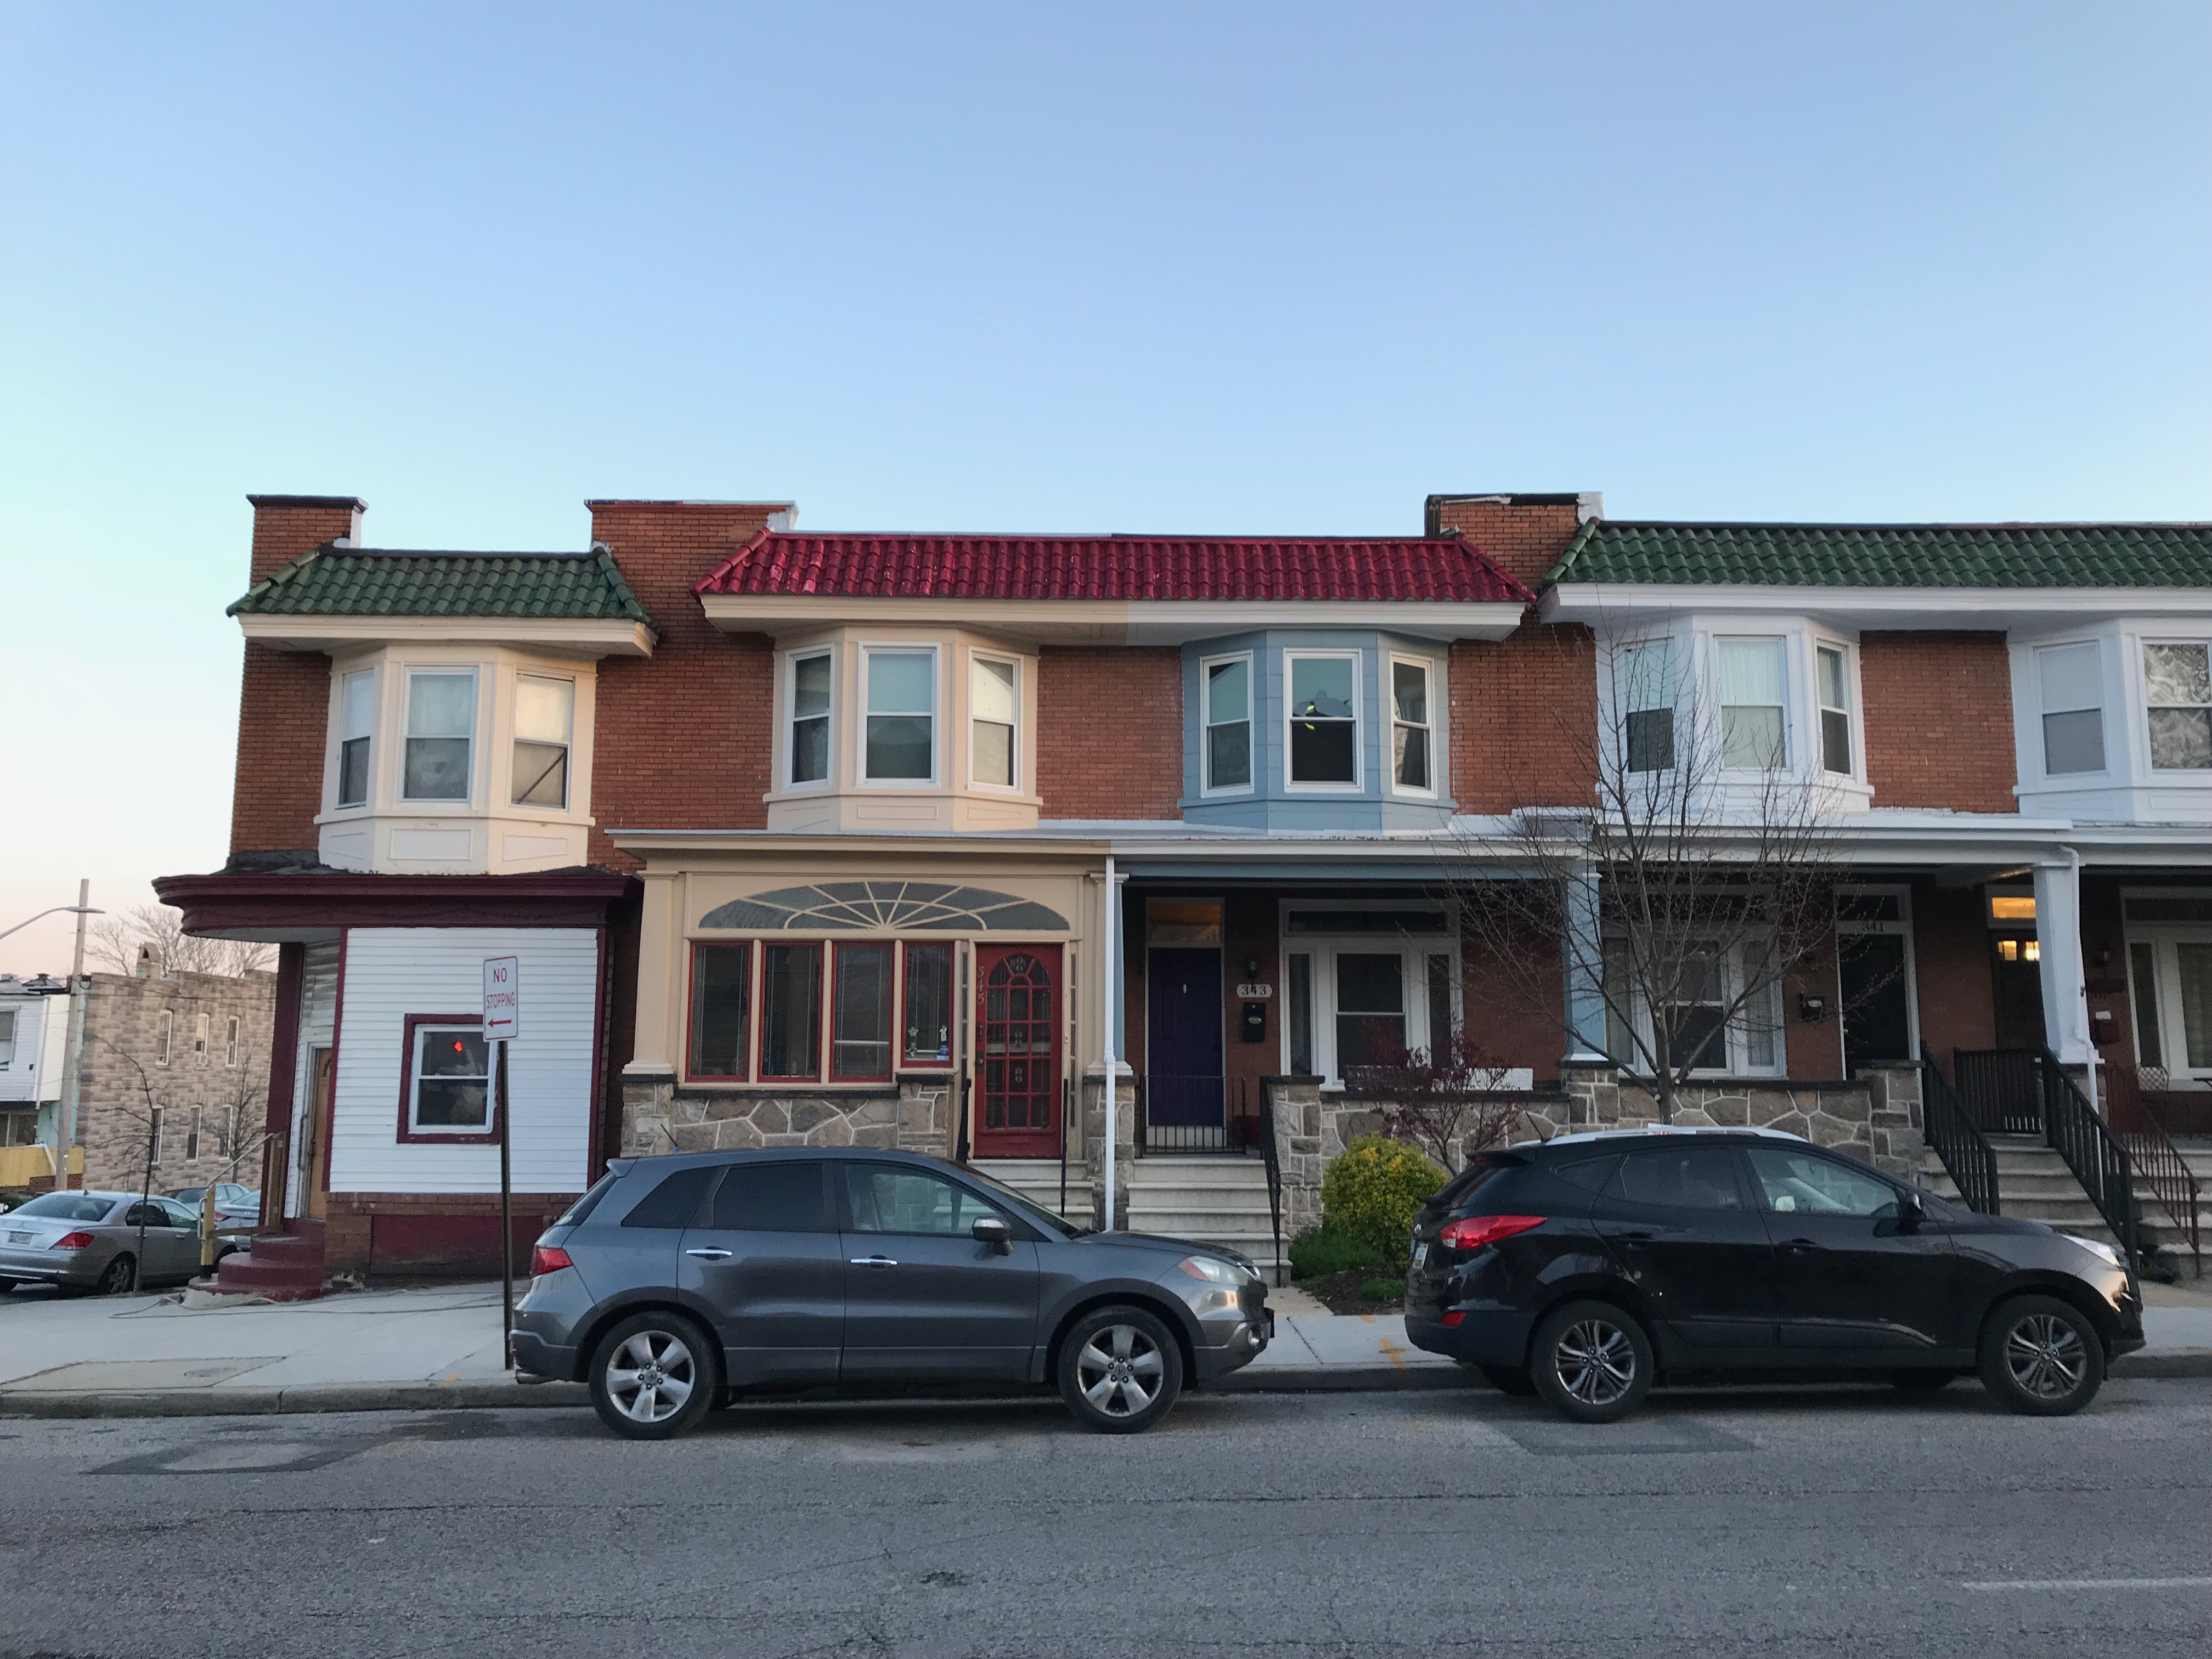 Rowhouses, 341-347 E. 29th Street, Baltimore, MD 21218, Barclay Street, Building, Car, Charles Village, HQ Photo